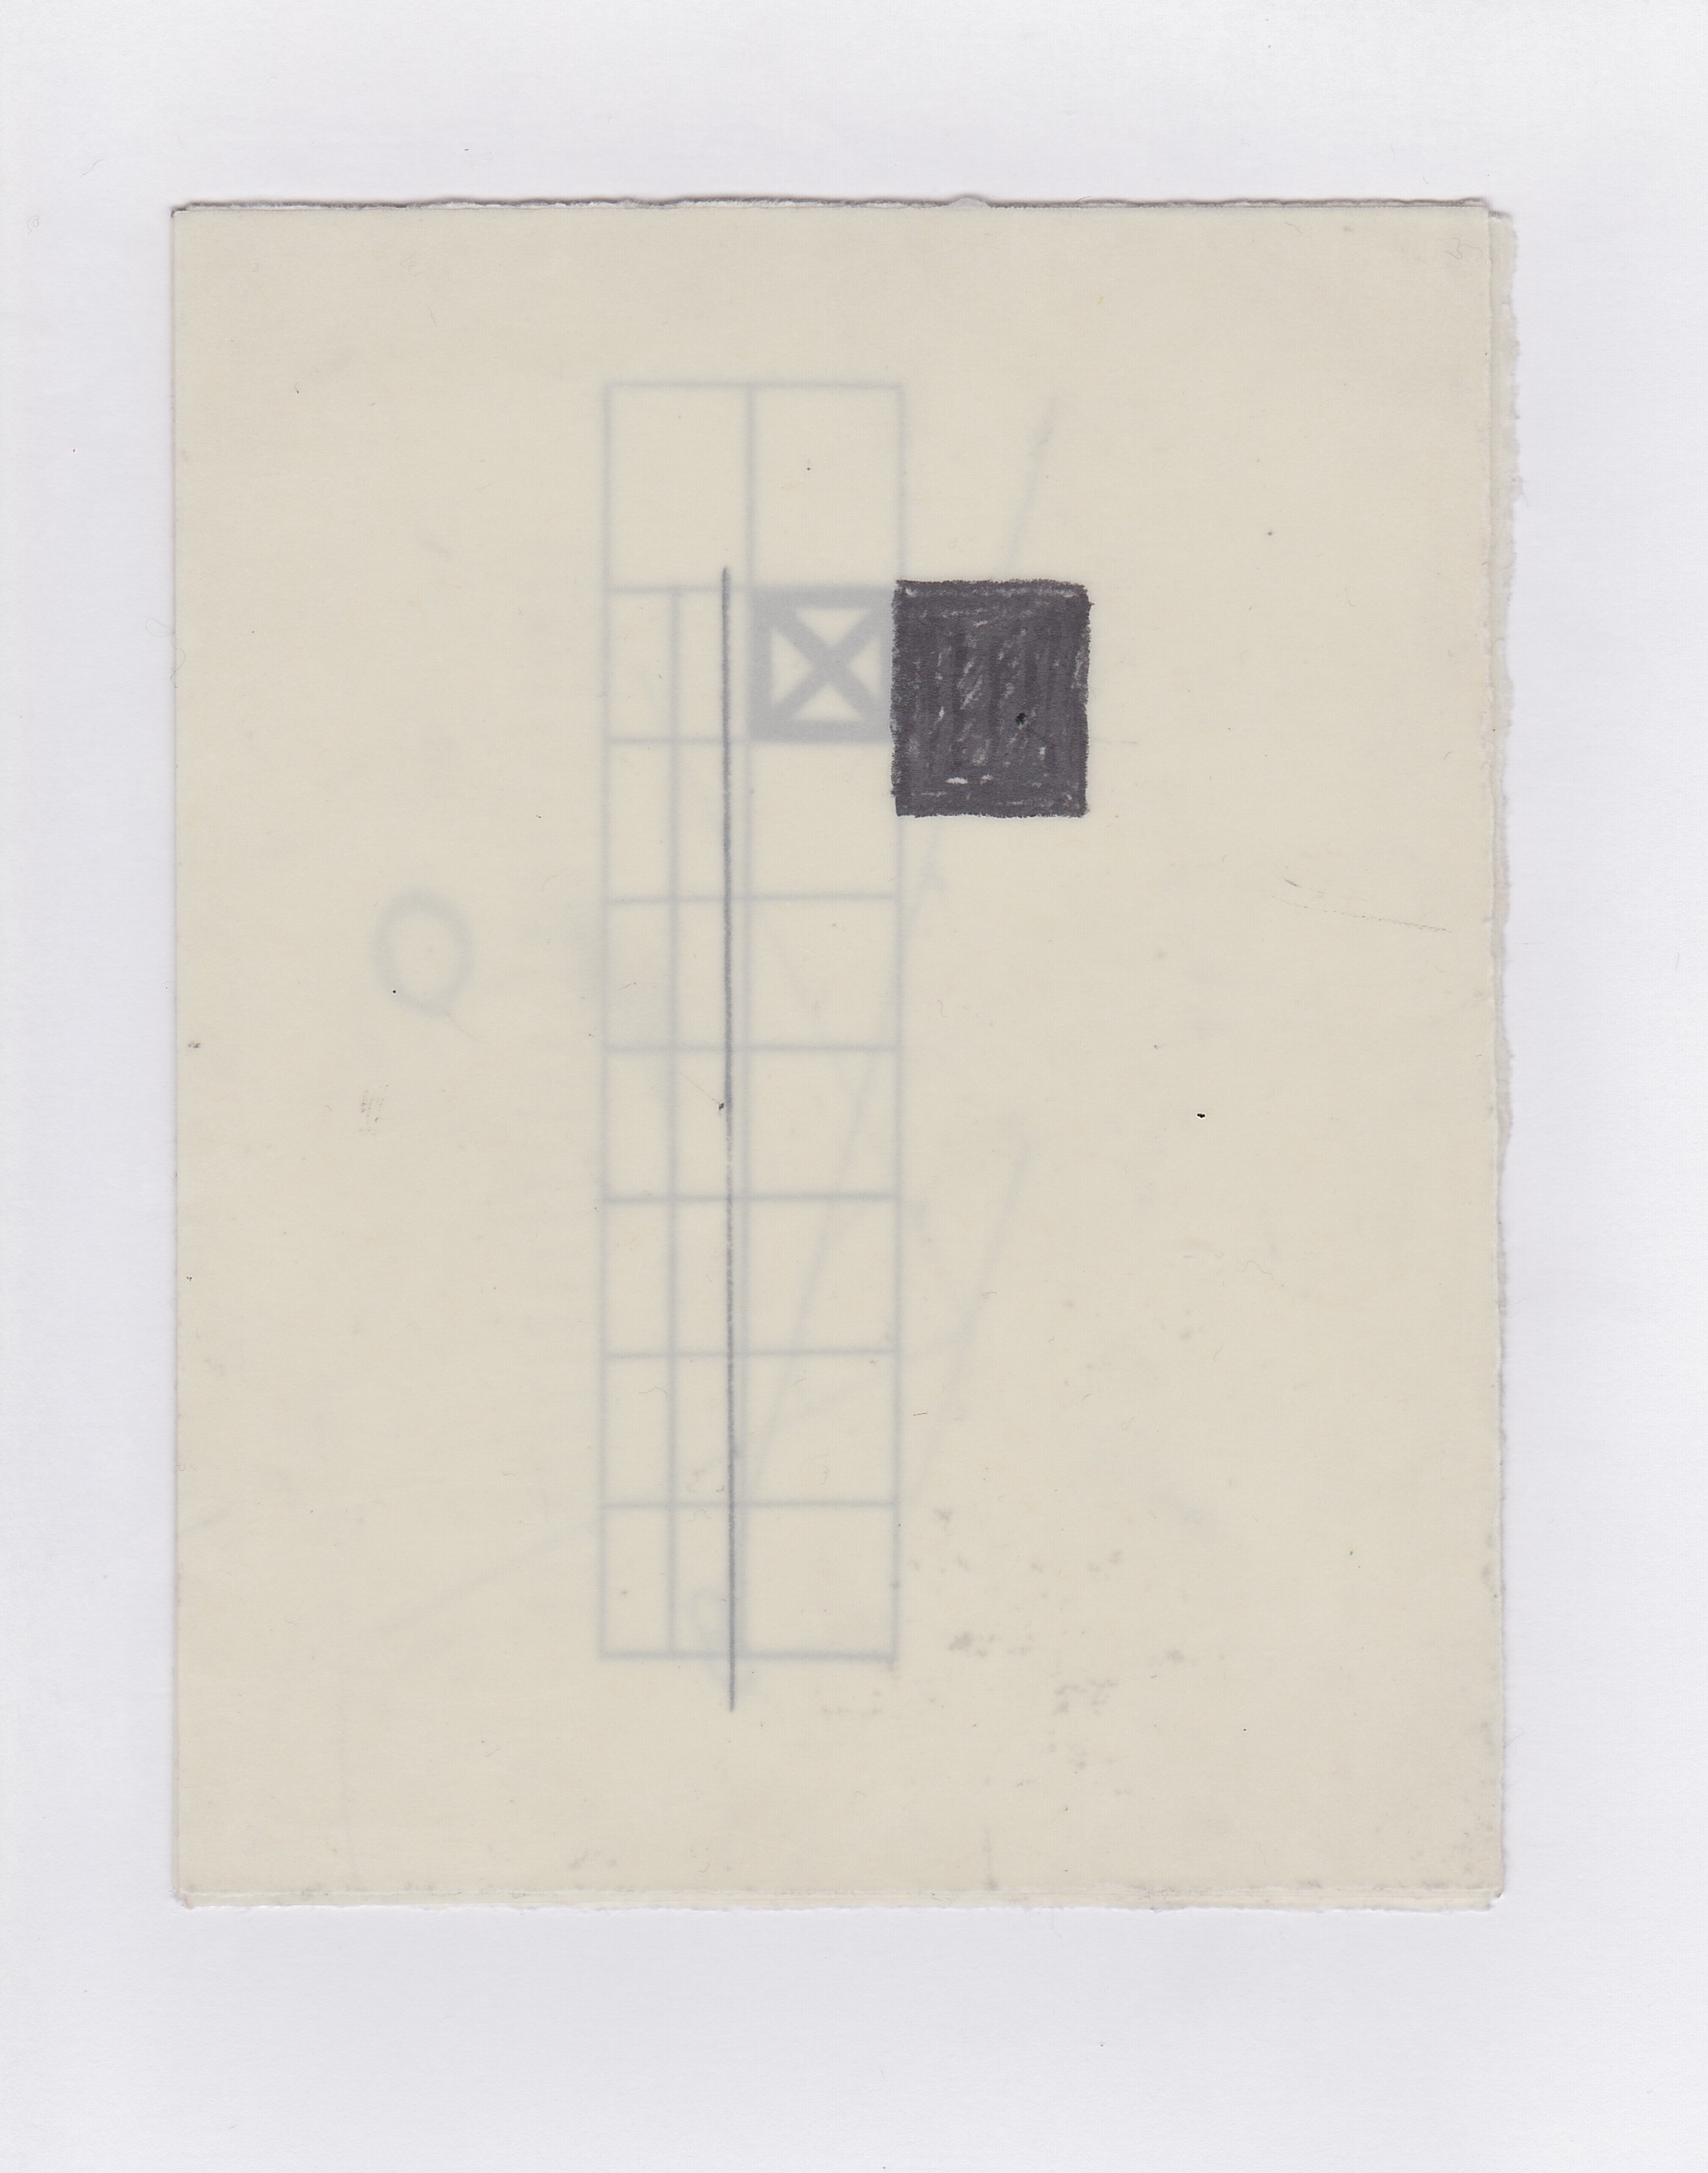 Untitled (the city, observations 07)  Pencil on oiled fabriano paper.  140mm x 180mm  December 2013.